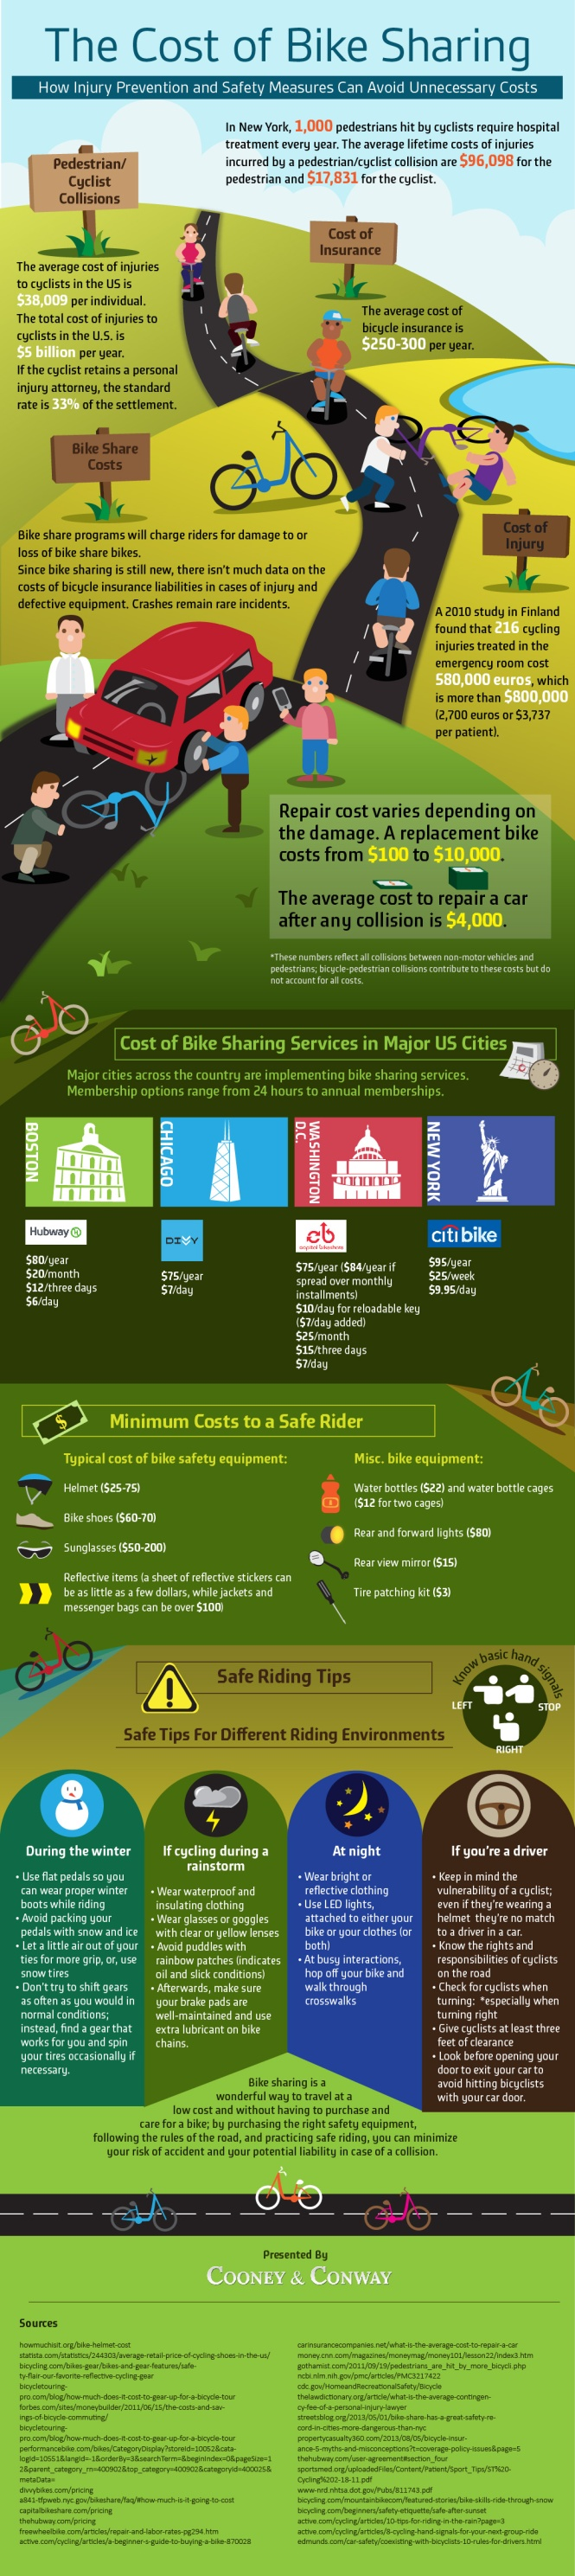 real-costs-of-bike-sharing